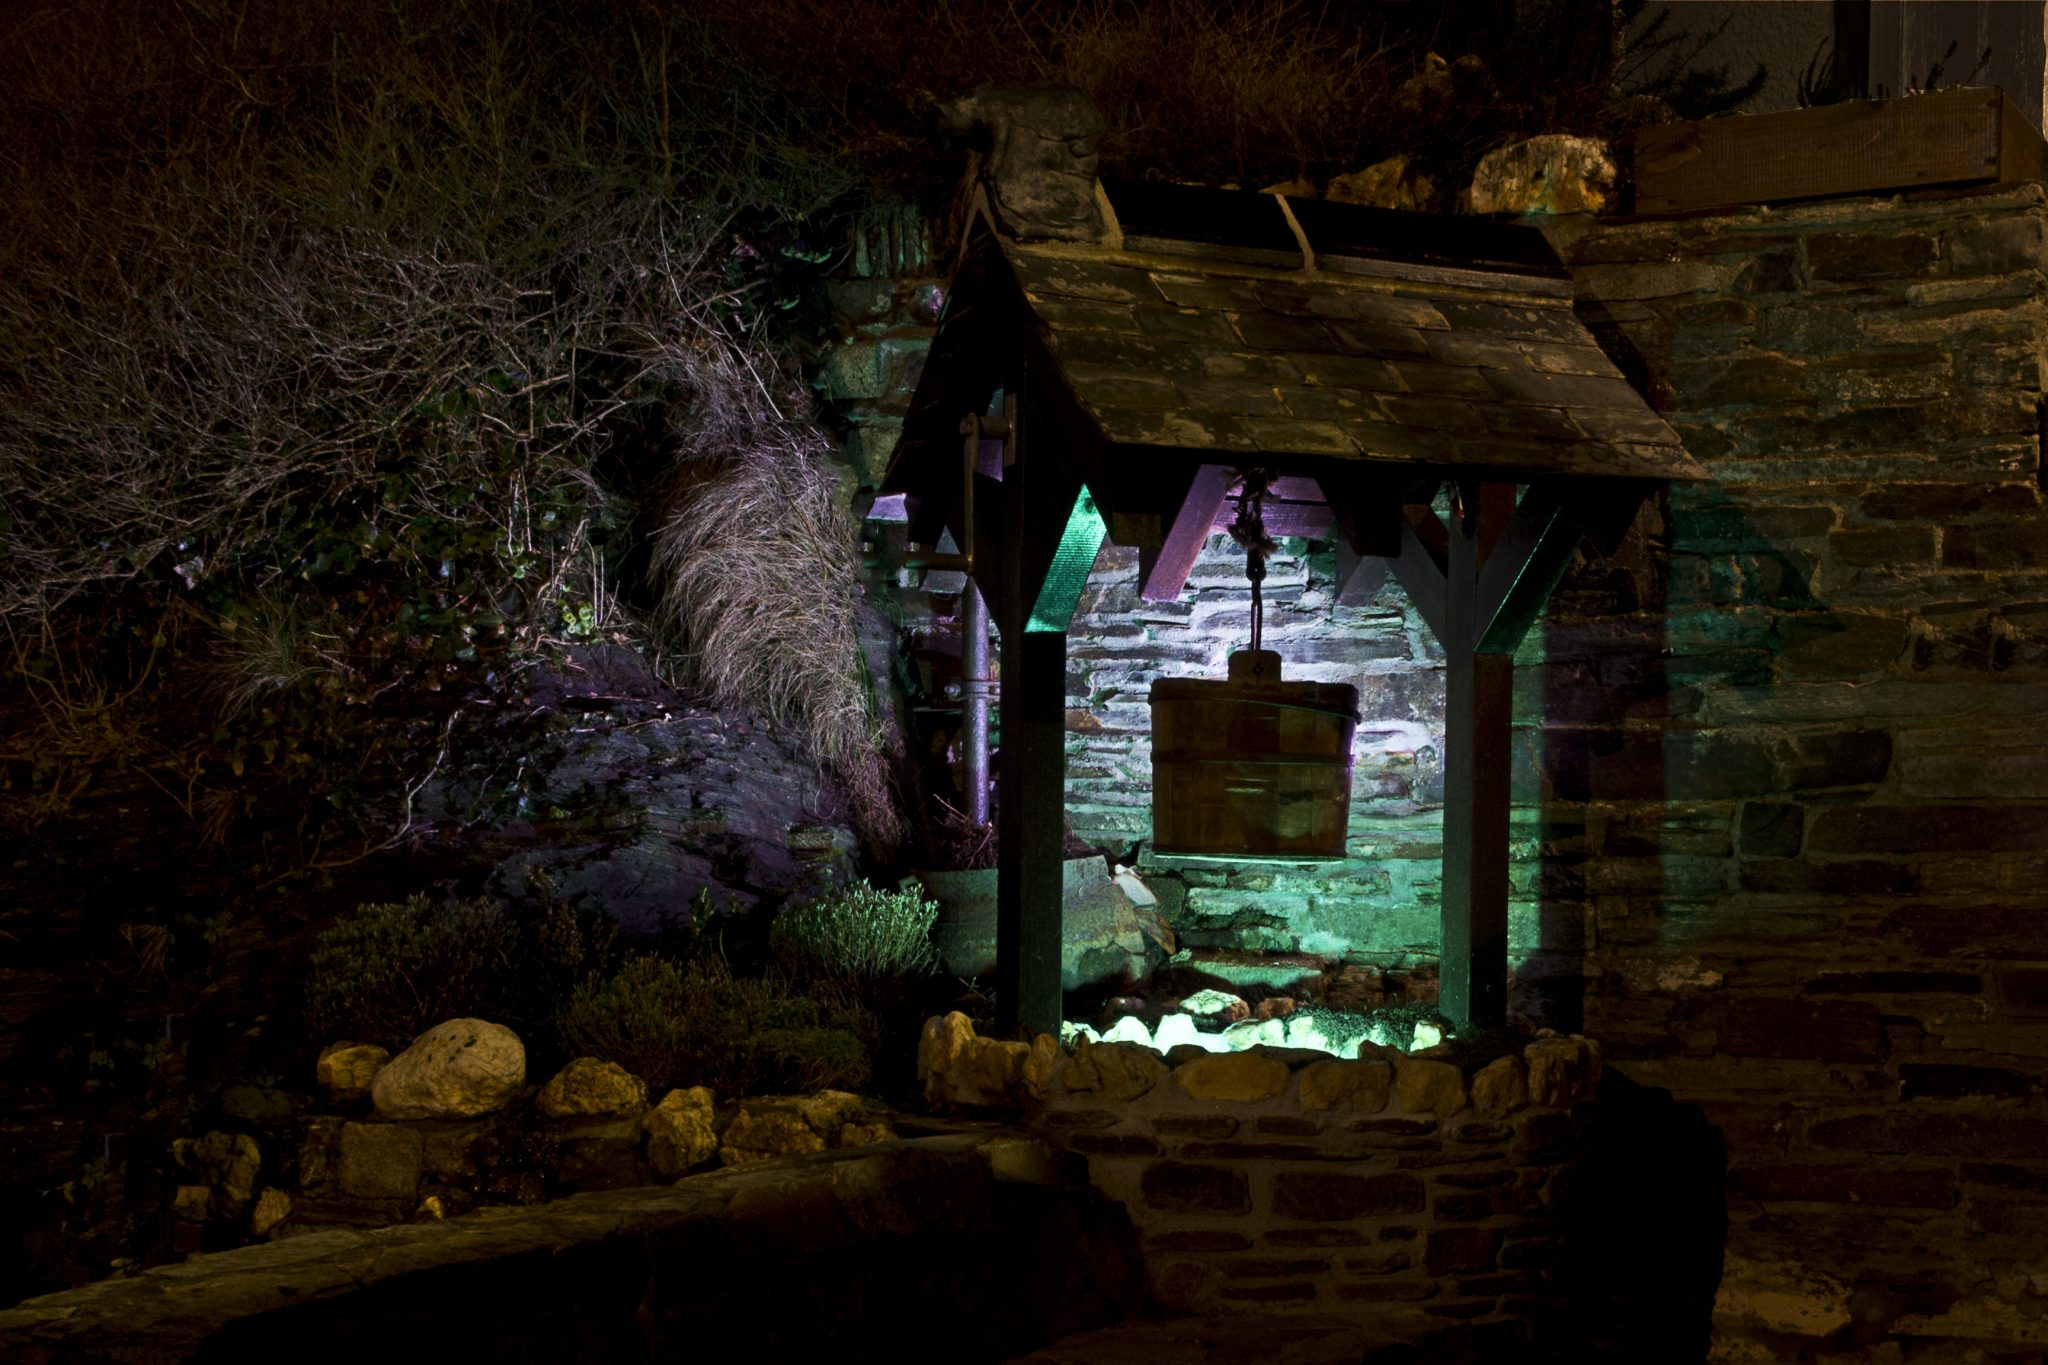 Photos of Museum Wishing Well at night